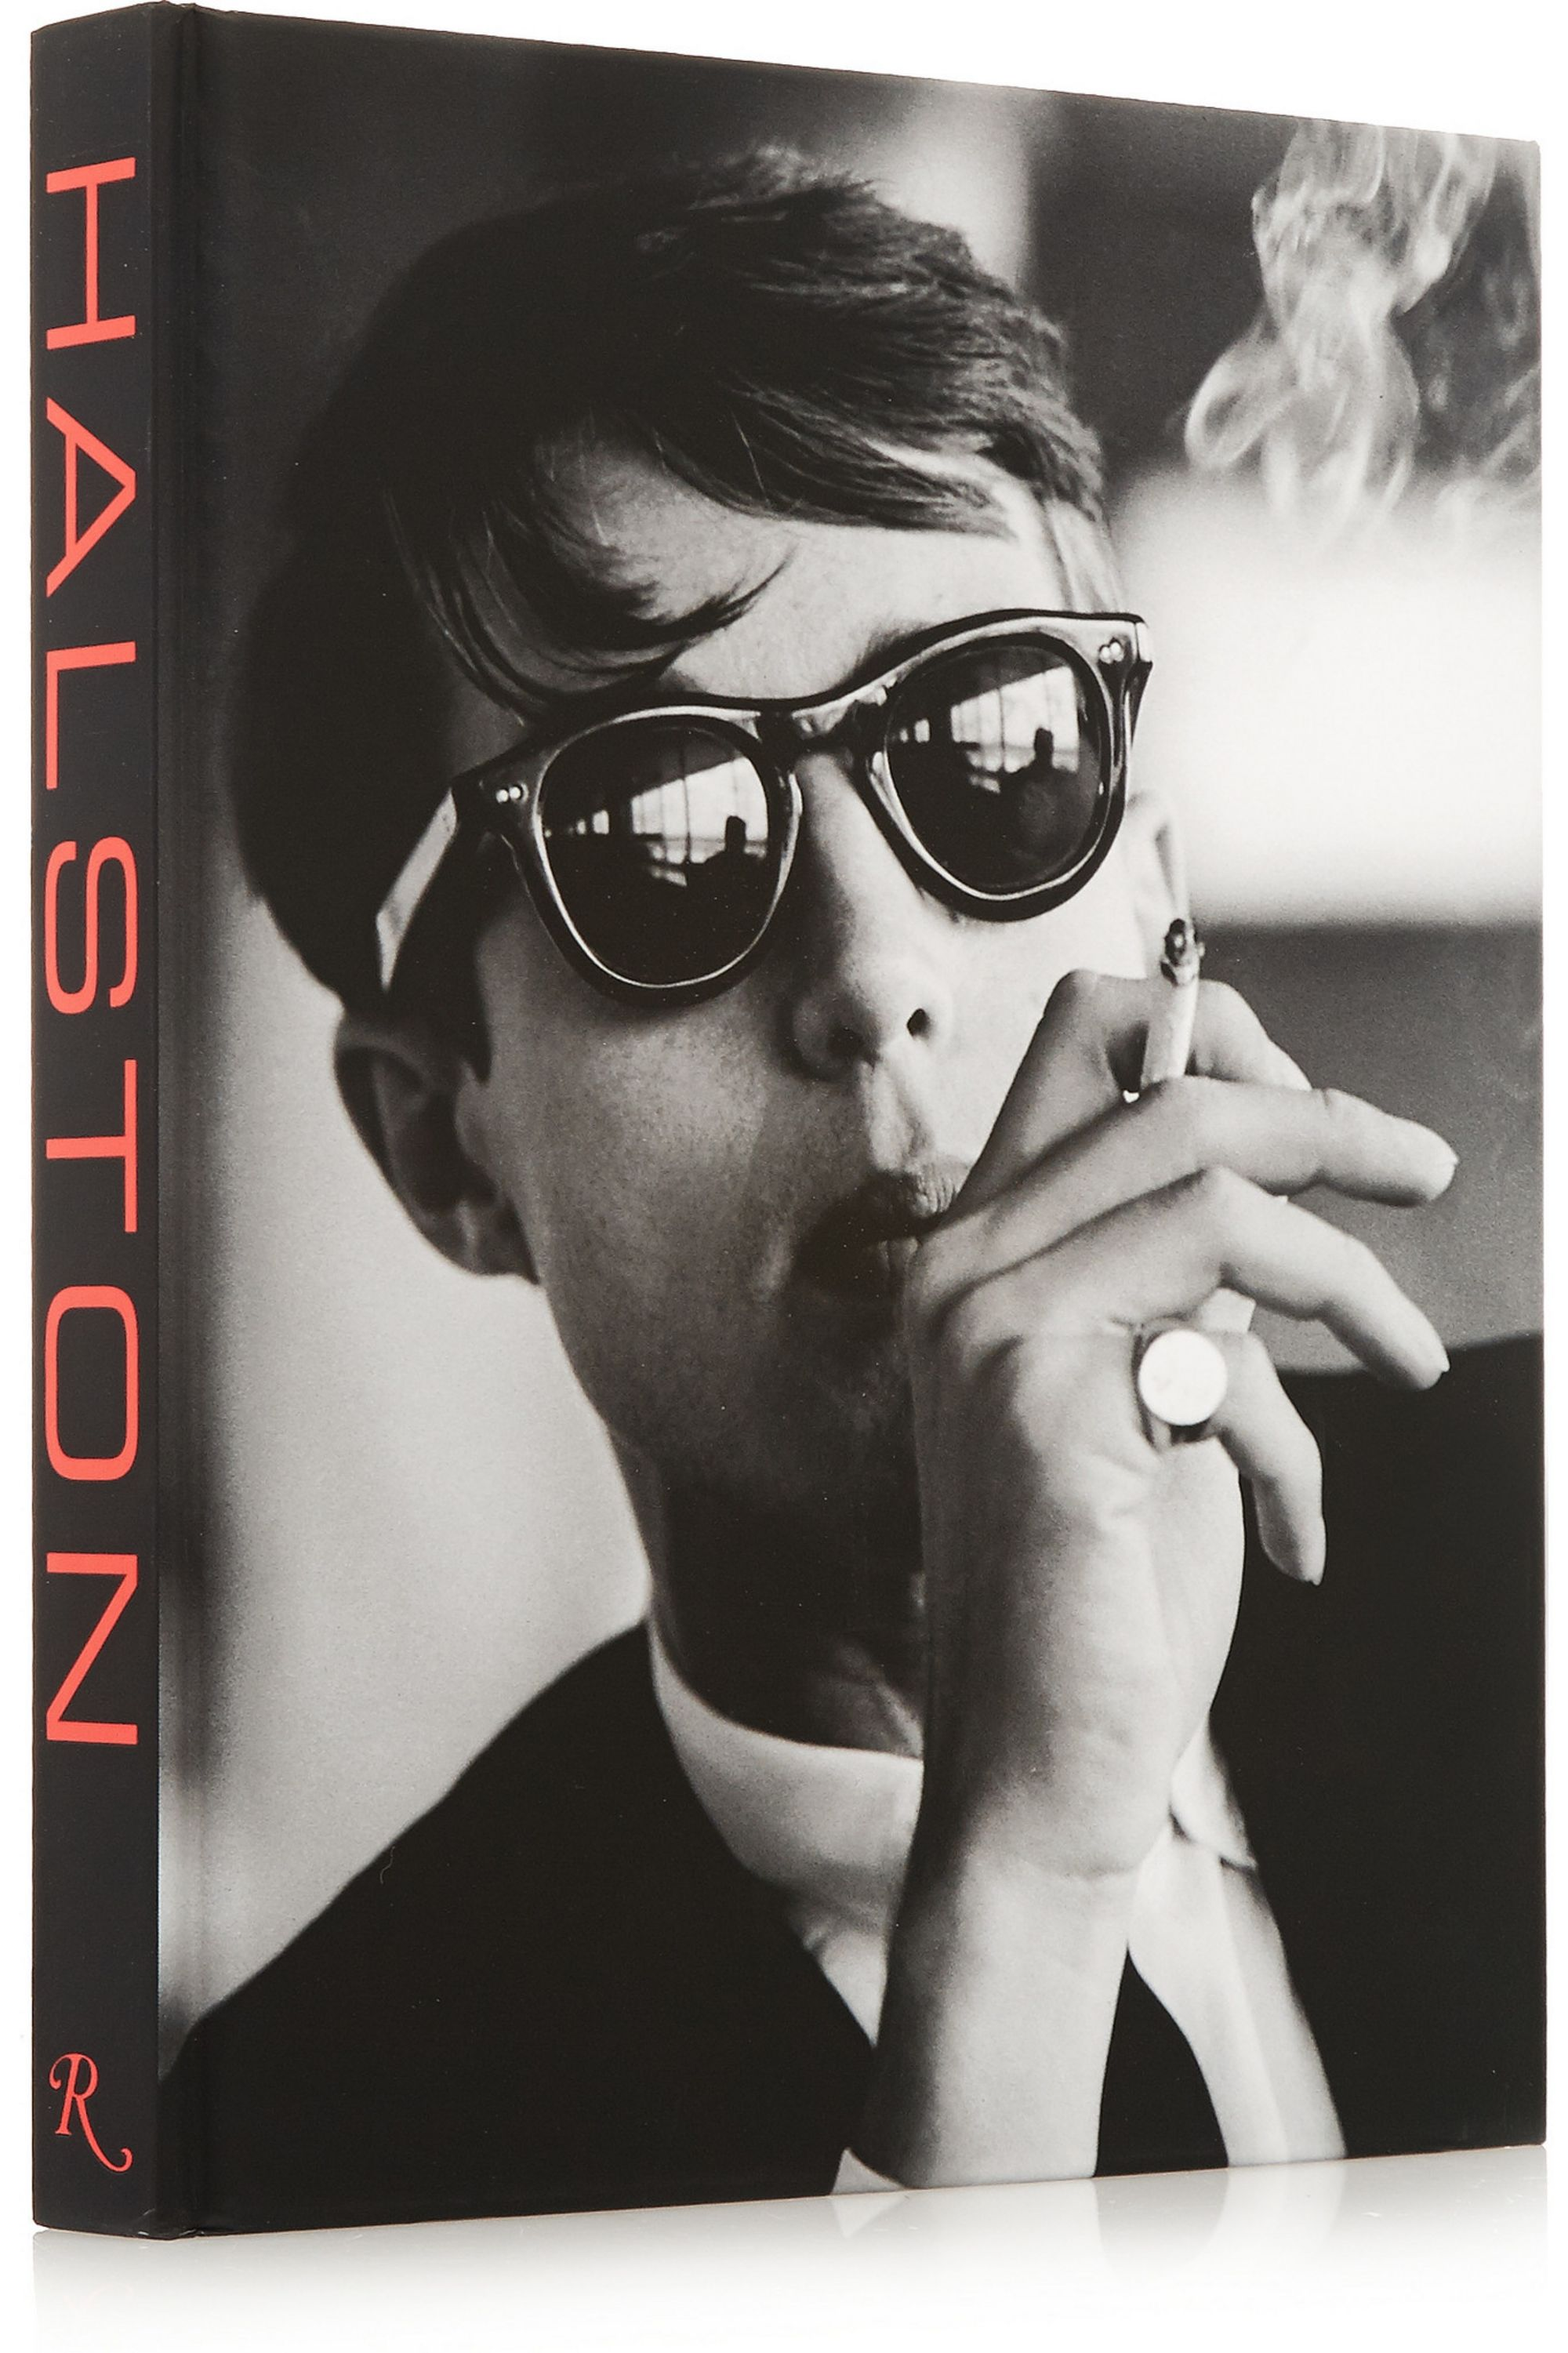 Black Halston Inventing American Fashion By Lesley Frowick Hardcover Book Rizzoli Net A Porter